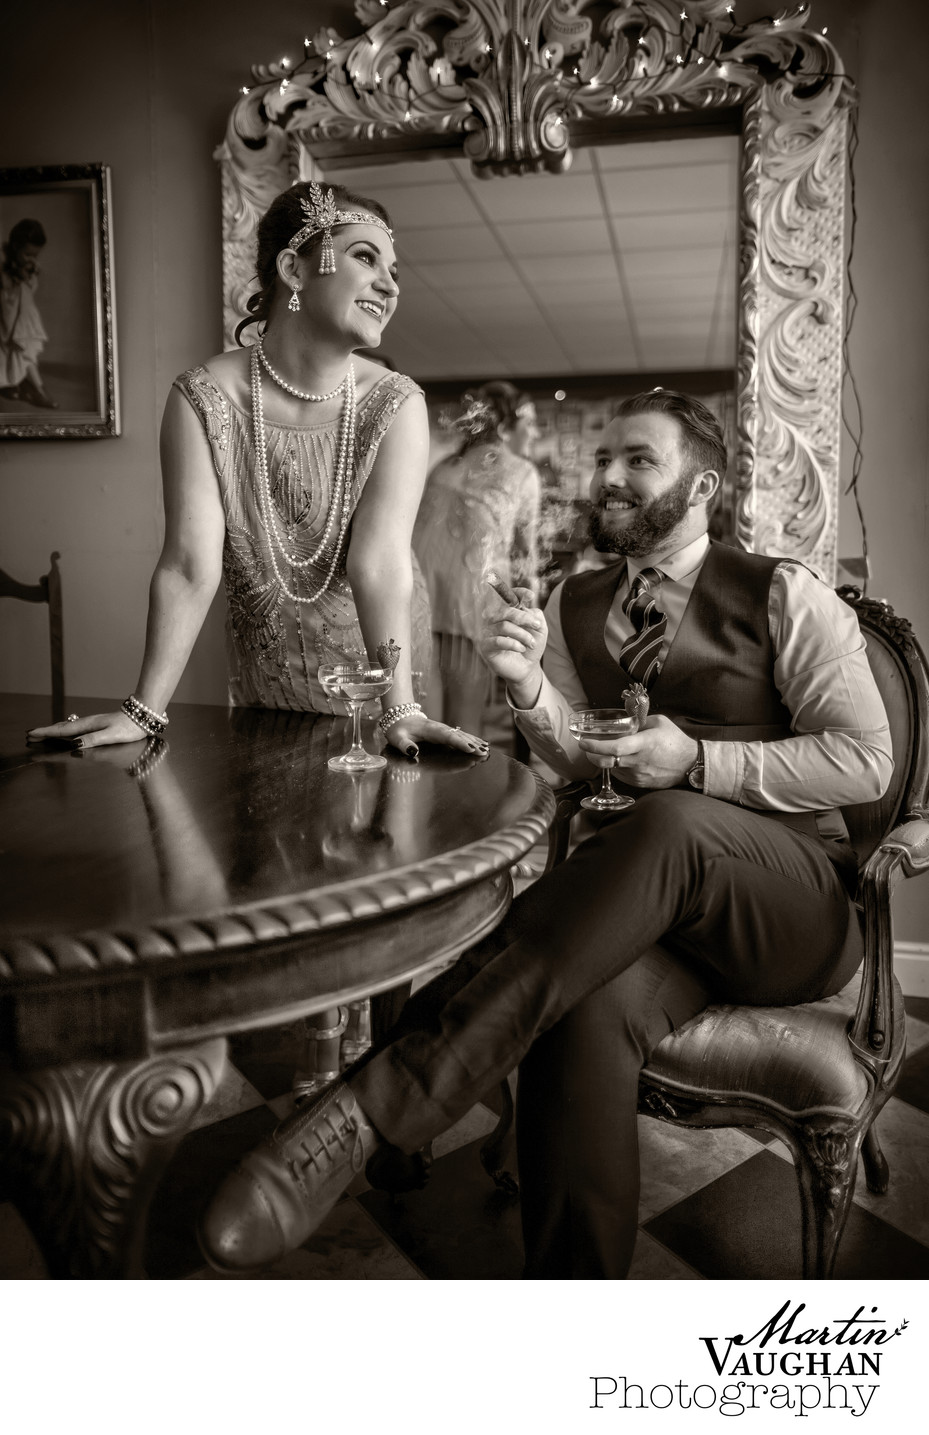 Martin Vaughan shoot at Prohibition Deganwy